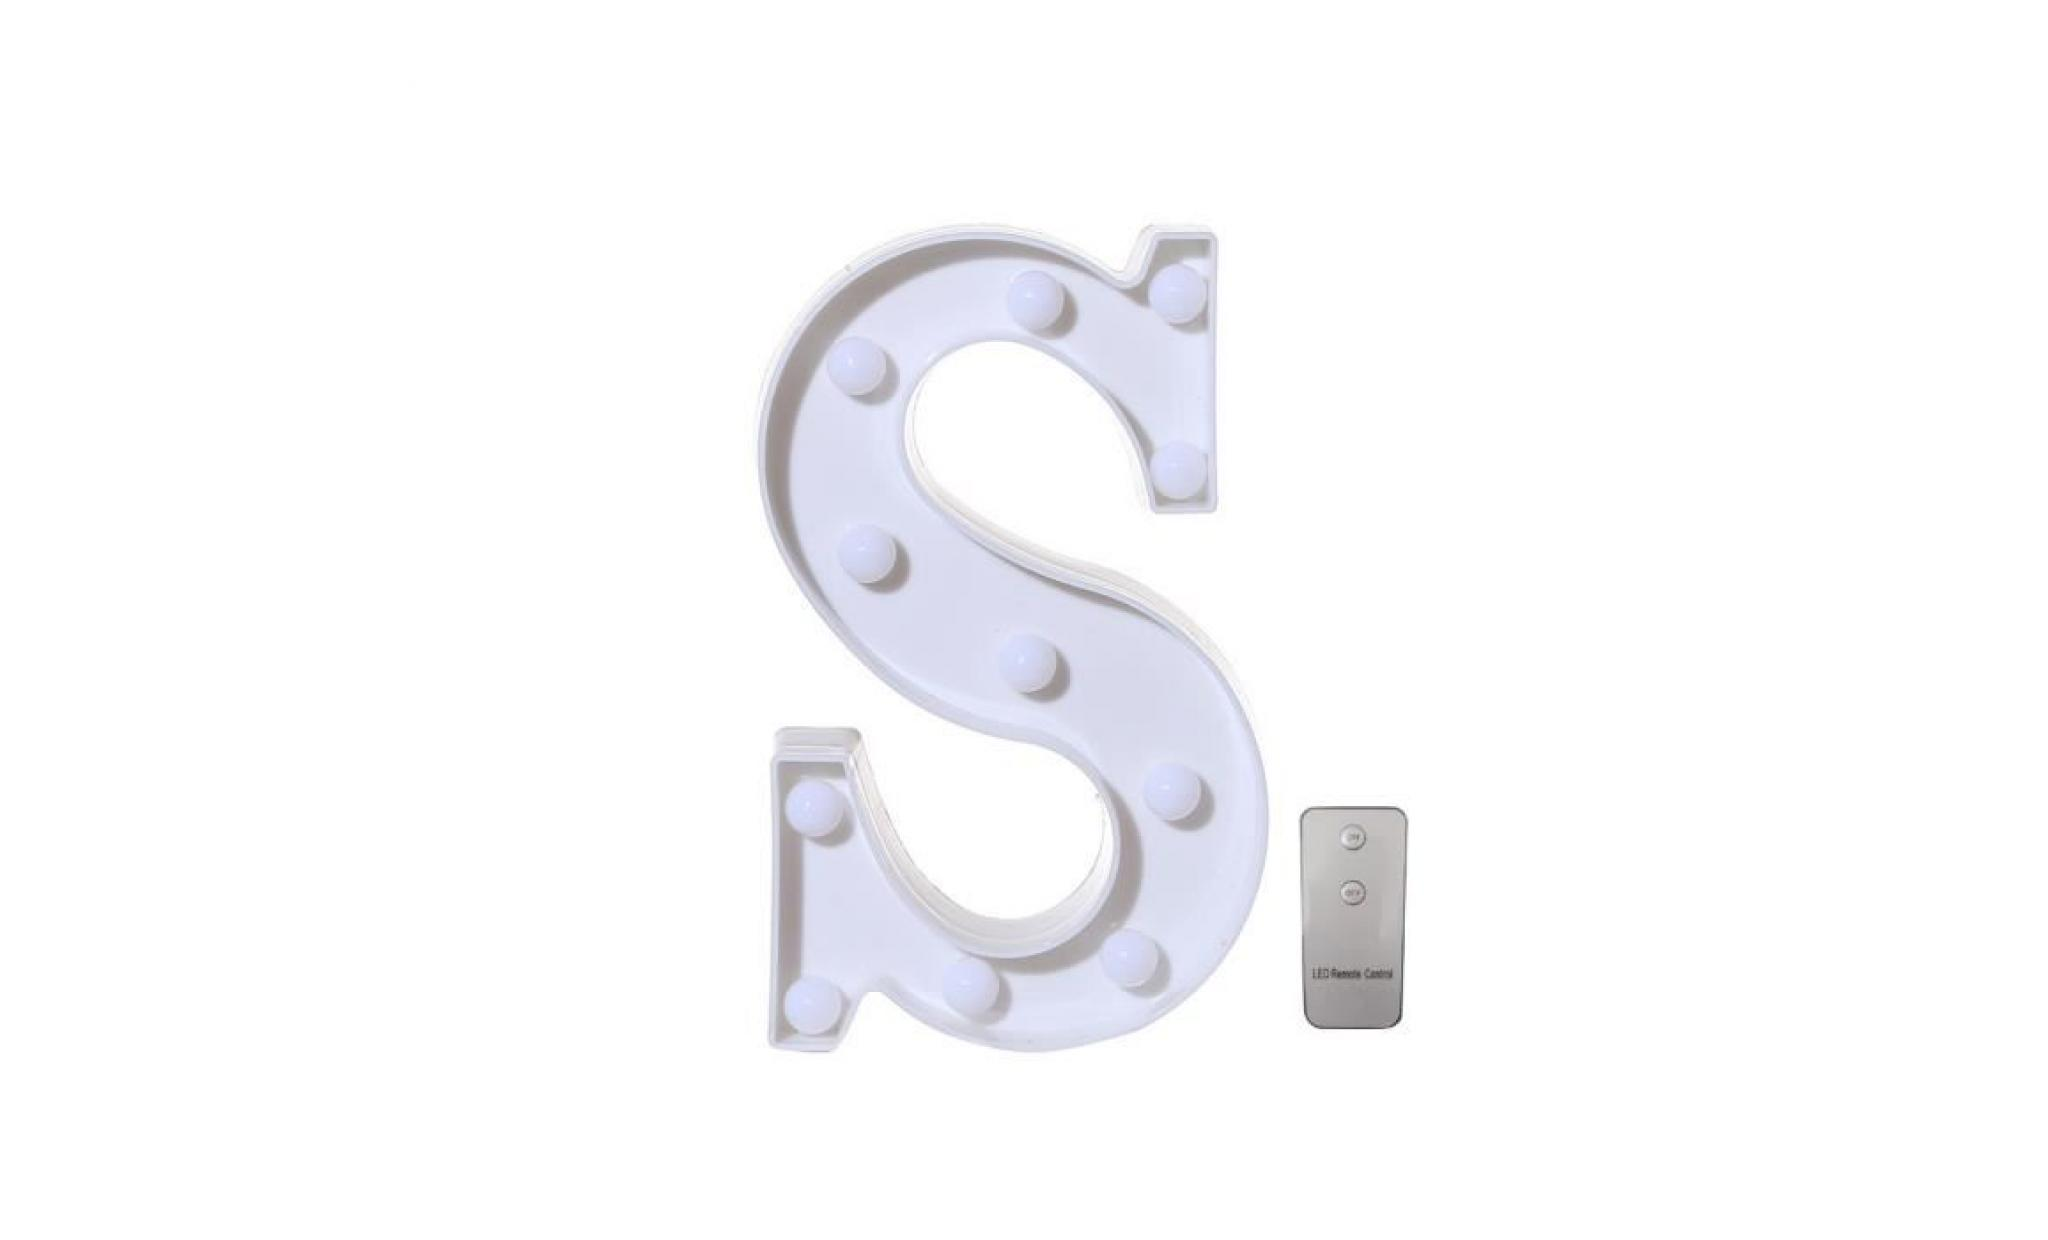 remote control alphabet letter lights led light up white plastic letters stand a pageare3659 pageare3659 pas cher